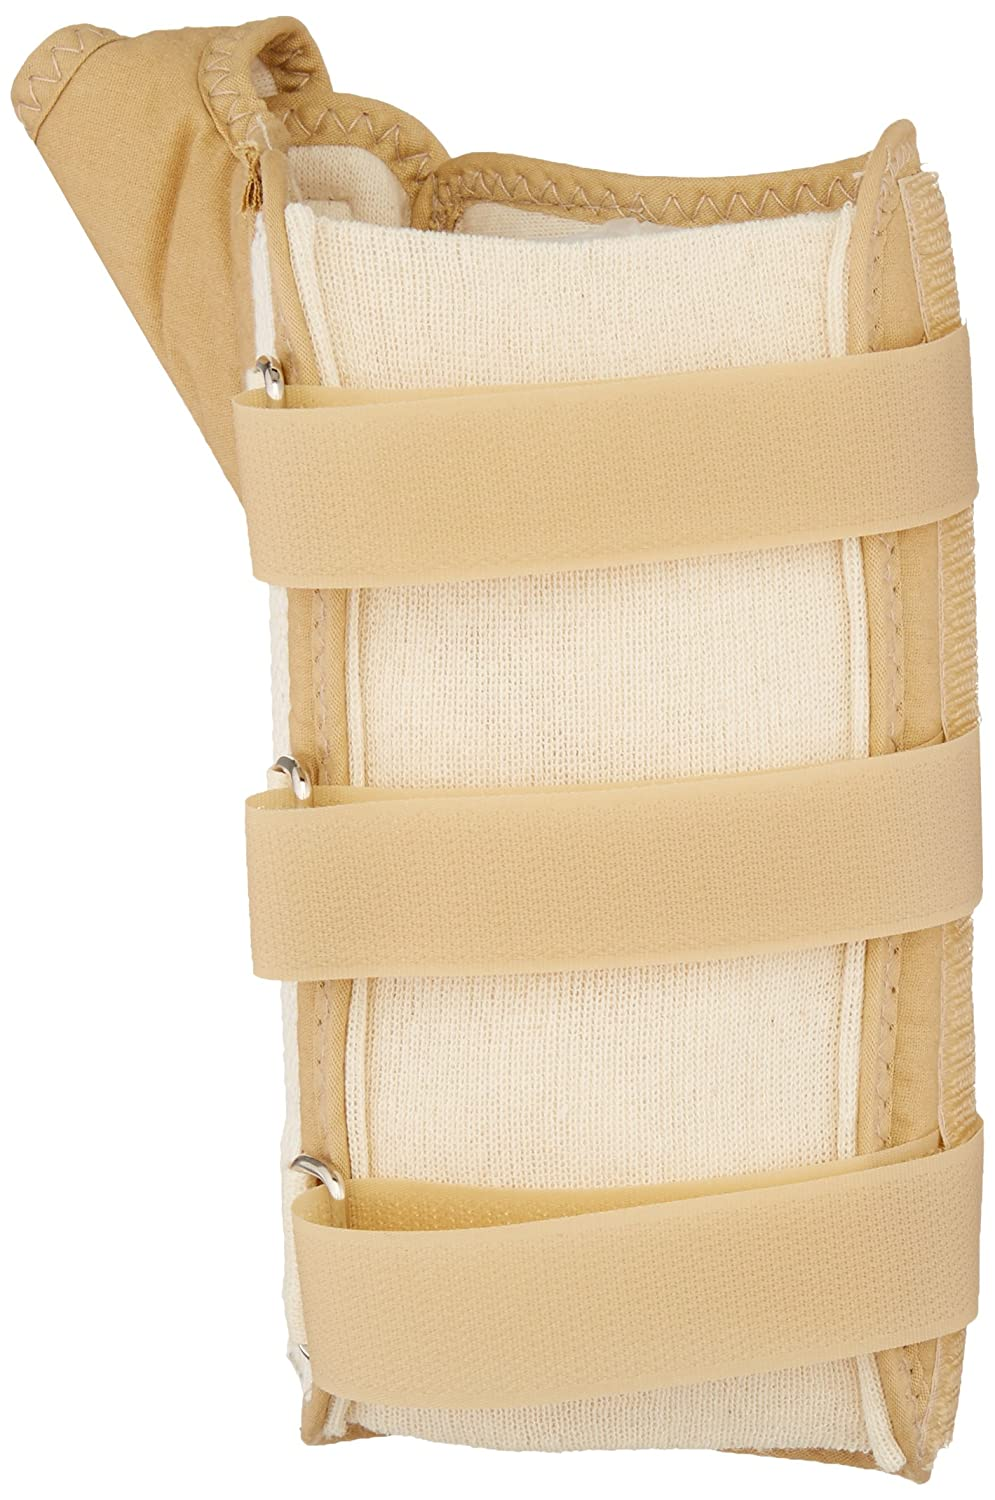 Inflammation /& Tendinitis Various Sizes 75889 Rolyan D-Ring Wrist and Thumb Spica Splint for Left or Right Wrist Carpal Tunnel Beige Wrist Supports for Tendonitis Easy On Easy Off Supprort Brace